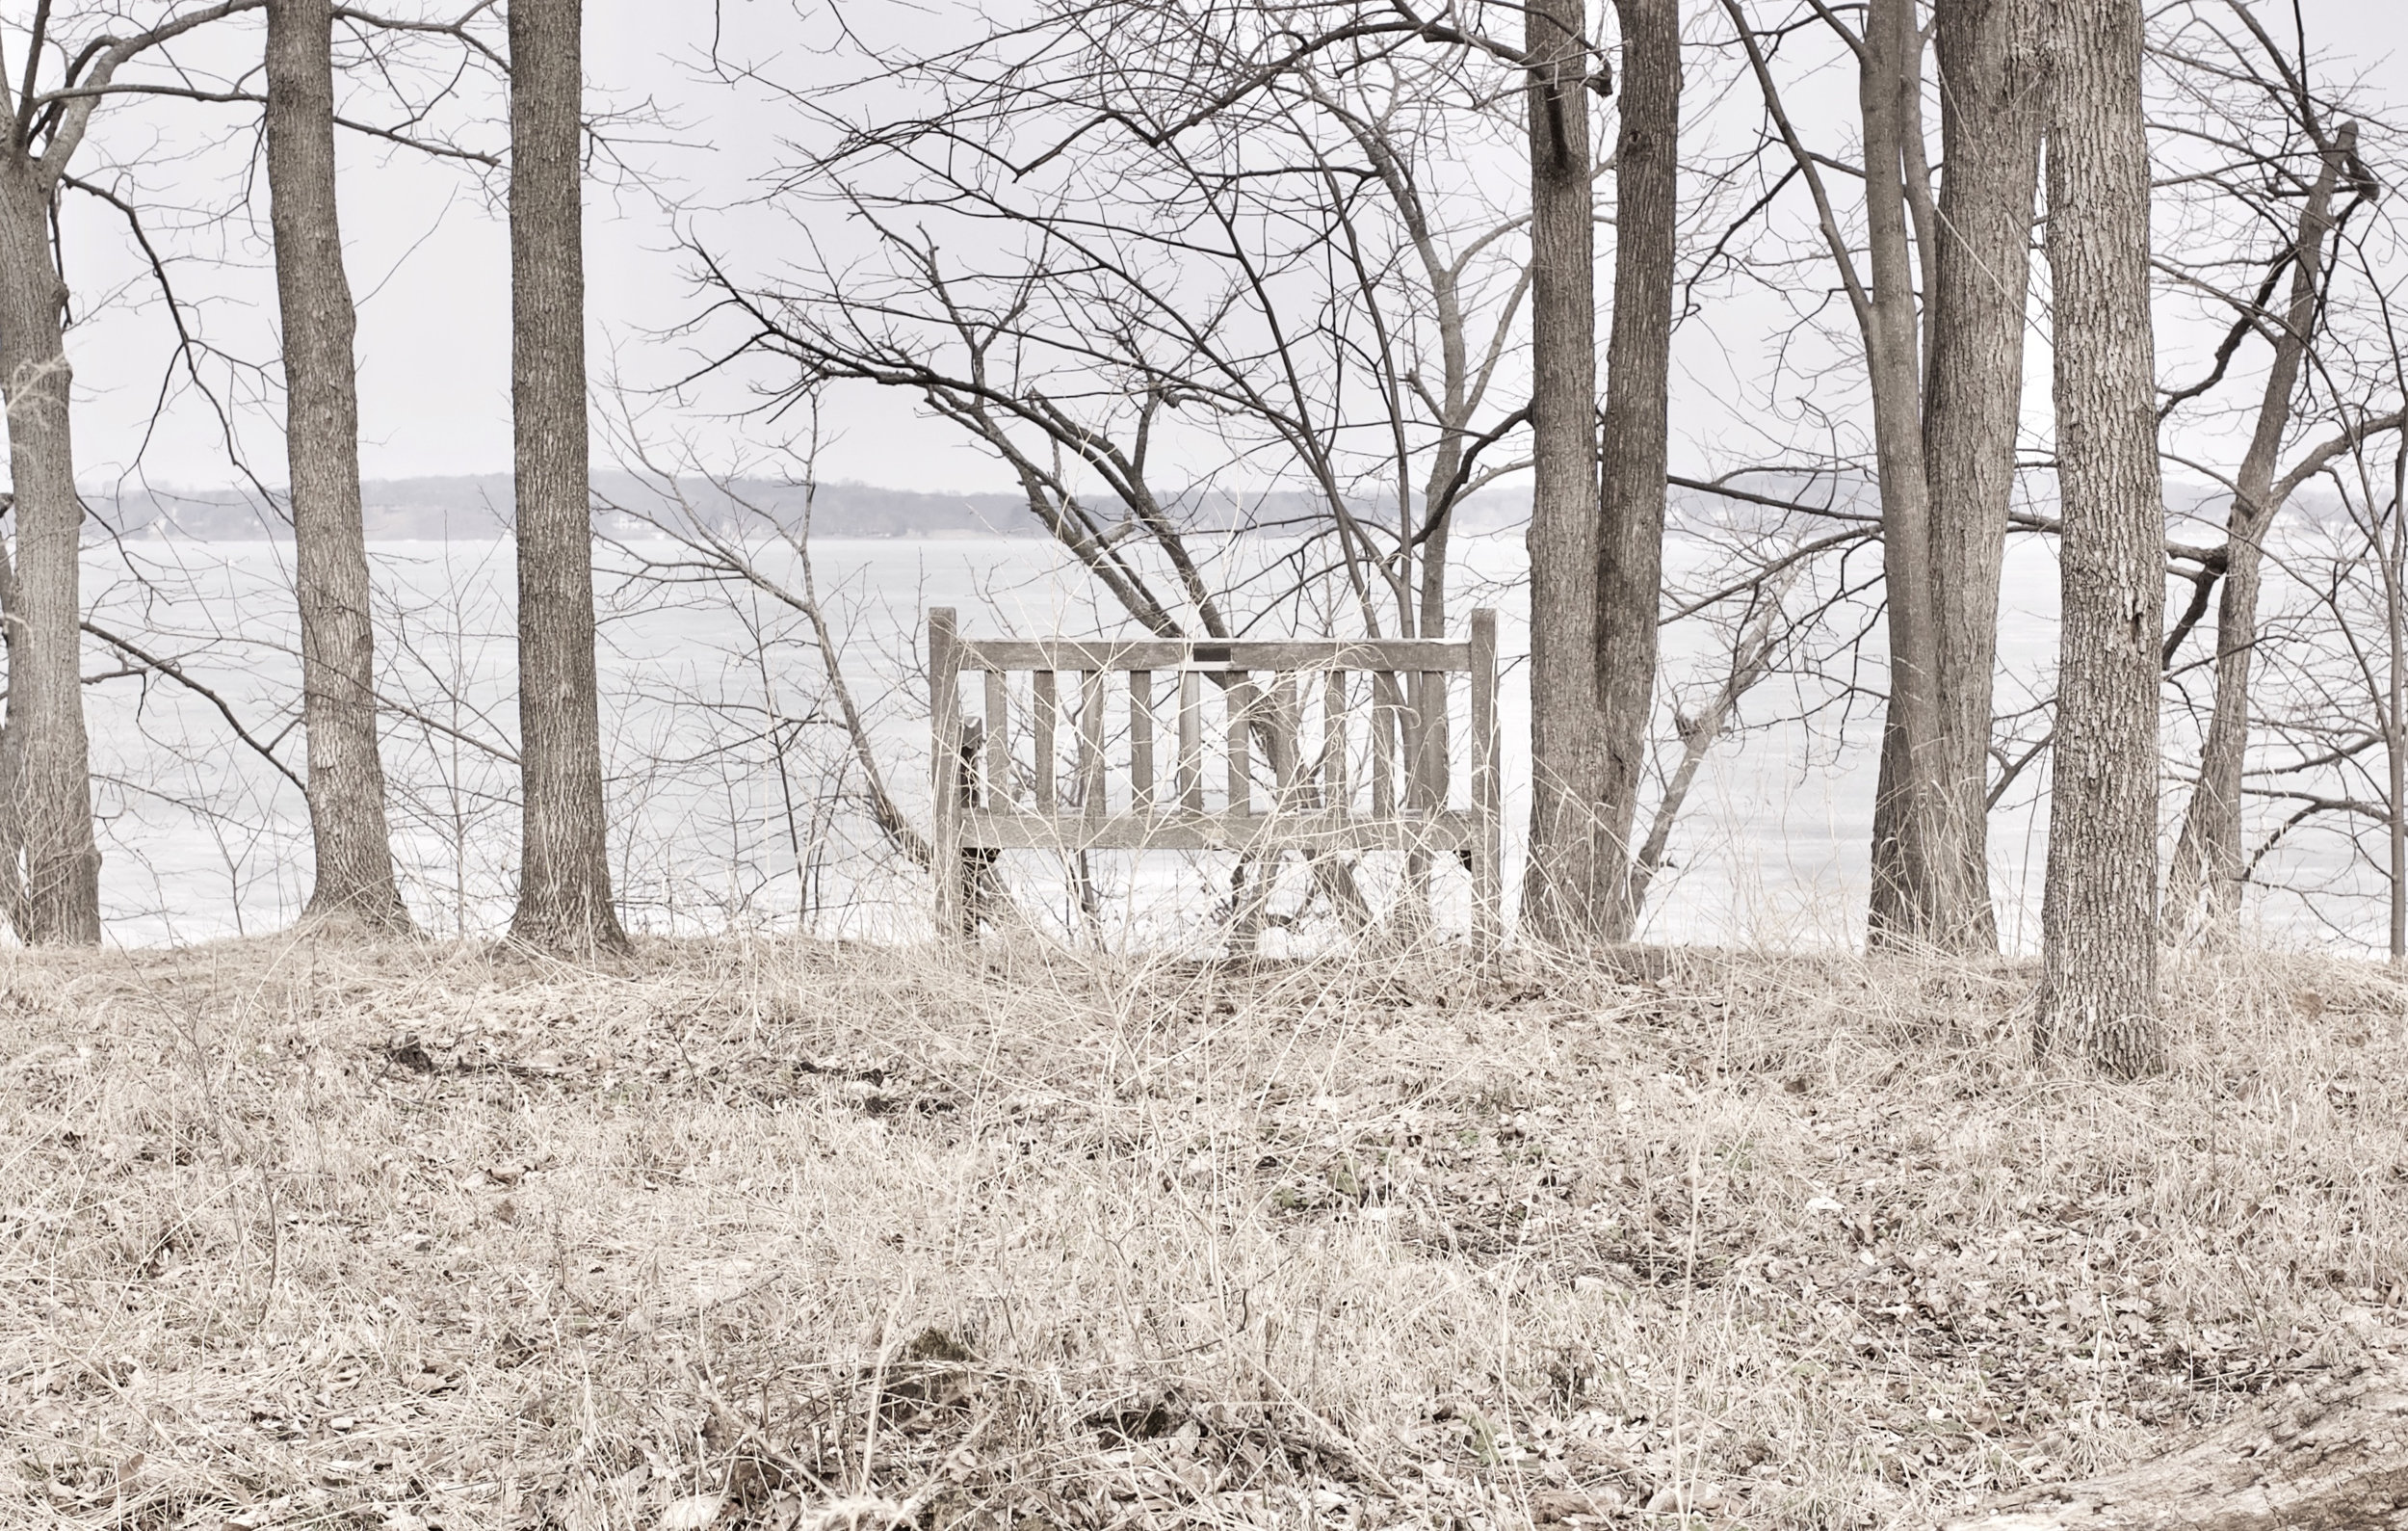 Among the Living. Picnic Point. Madison, Wisconsin. April 2014. © William D. Walker